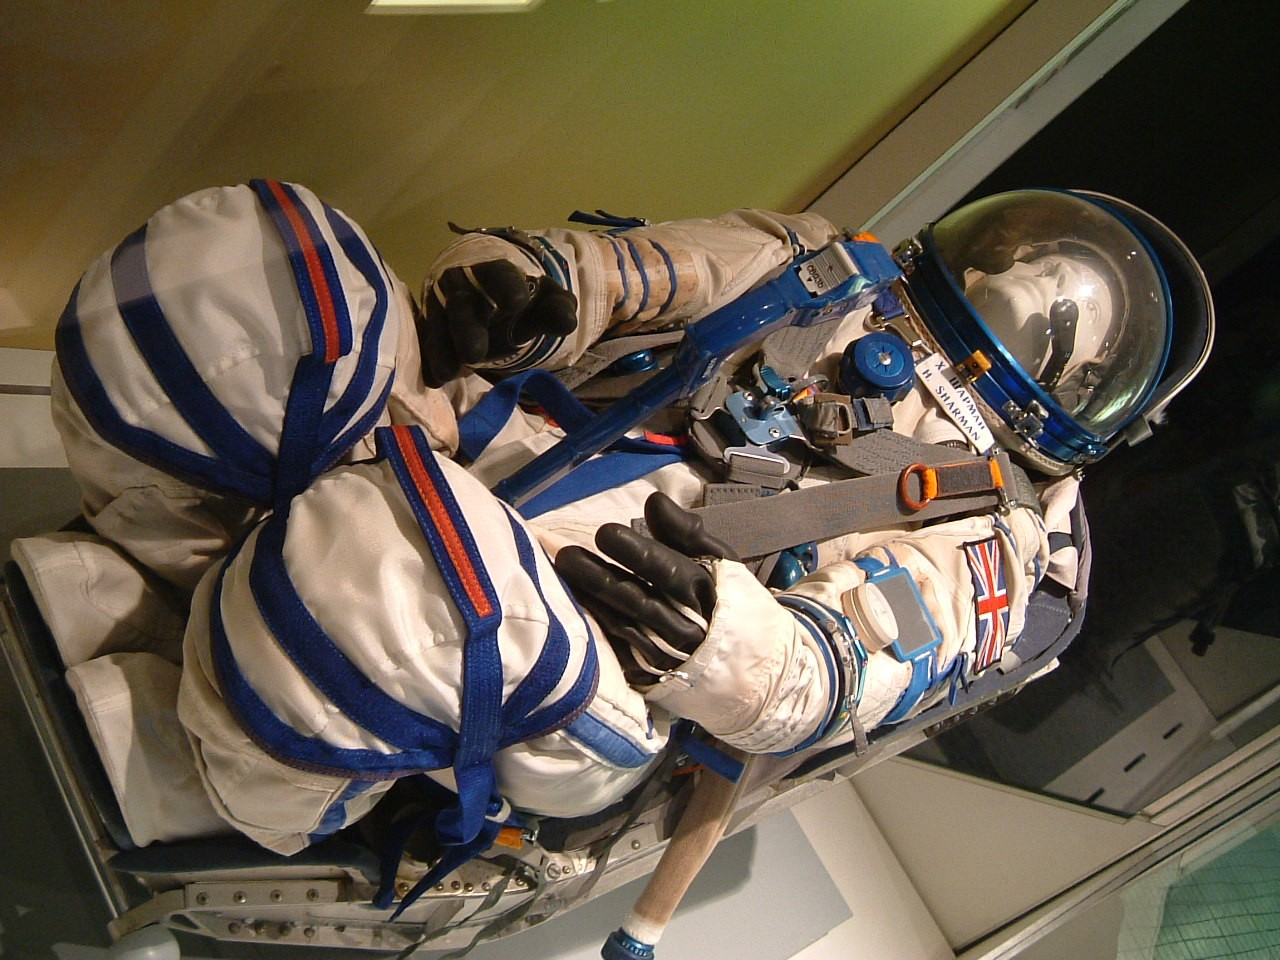 Helen Sharman's spacesuit on display at the National Space Centre in Leicestershire. Credit: Alan Saunders (Kaptain Kobold) from Staines, UK - Flickr